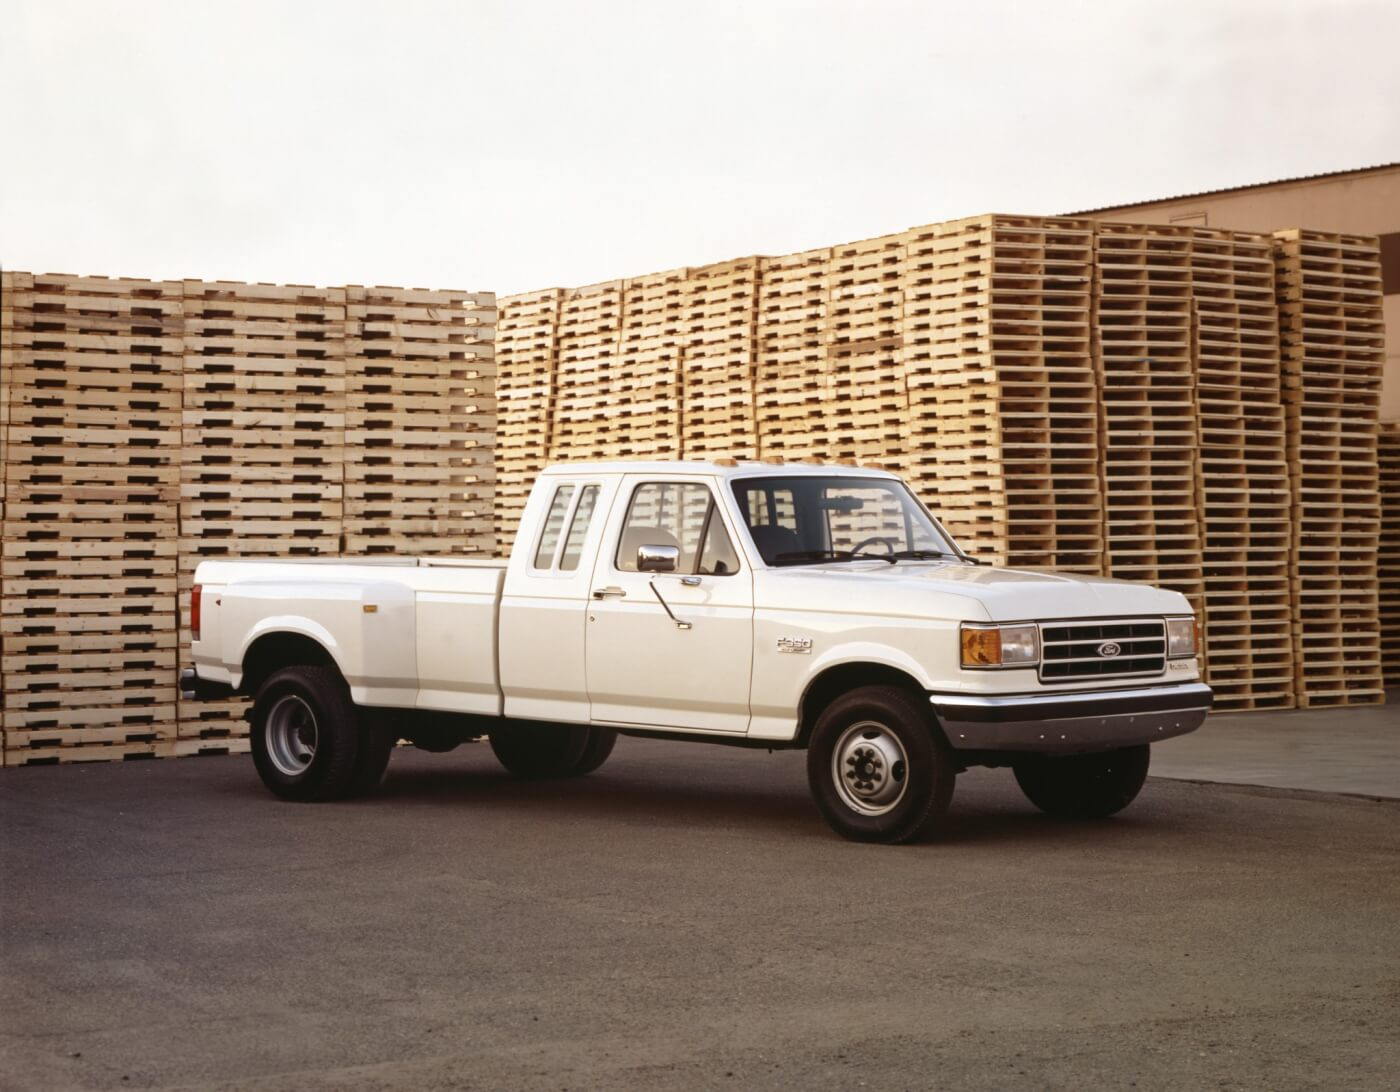 Fords 1st Diesel Pickup Engine 1980 Ford Conversion Van In 1990 You Could Get A Powered Supercab F 350 Xlt Lariat Dually